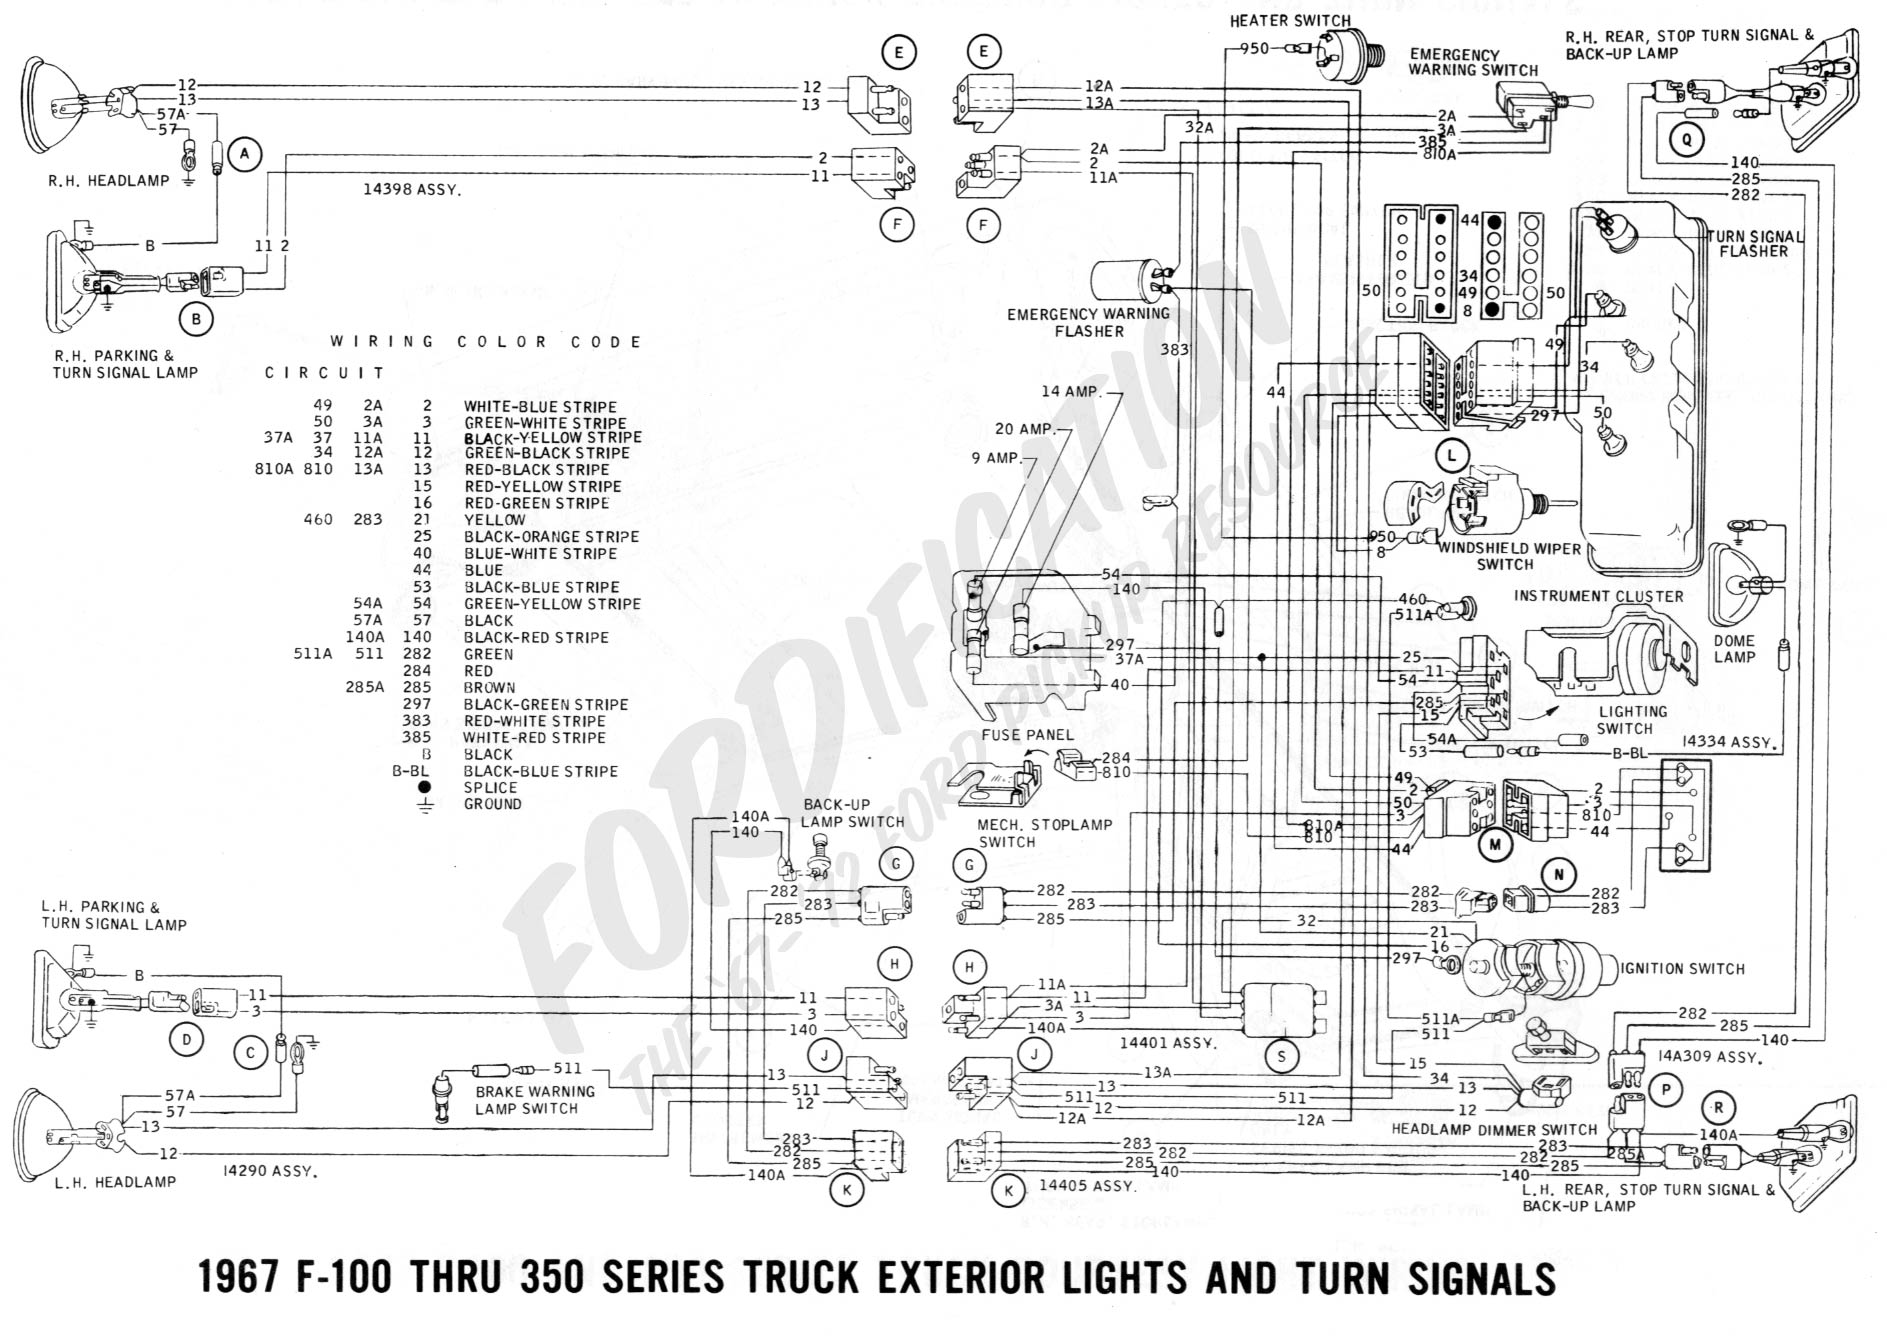 1979 Ford Mustang Fuse Box Wiring Schematics Diagram Library 2002 Ranger 92 Turn Signal Detailed 2000 E150 02